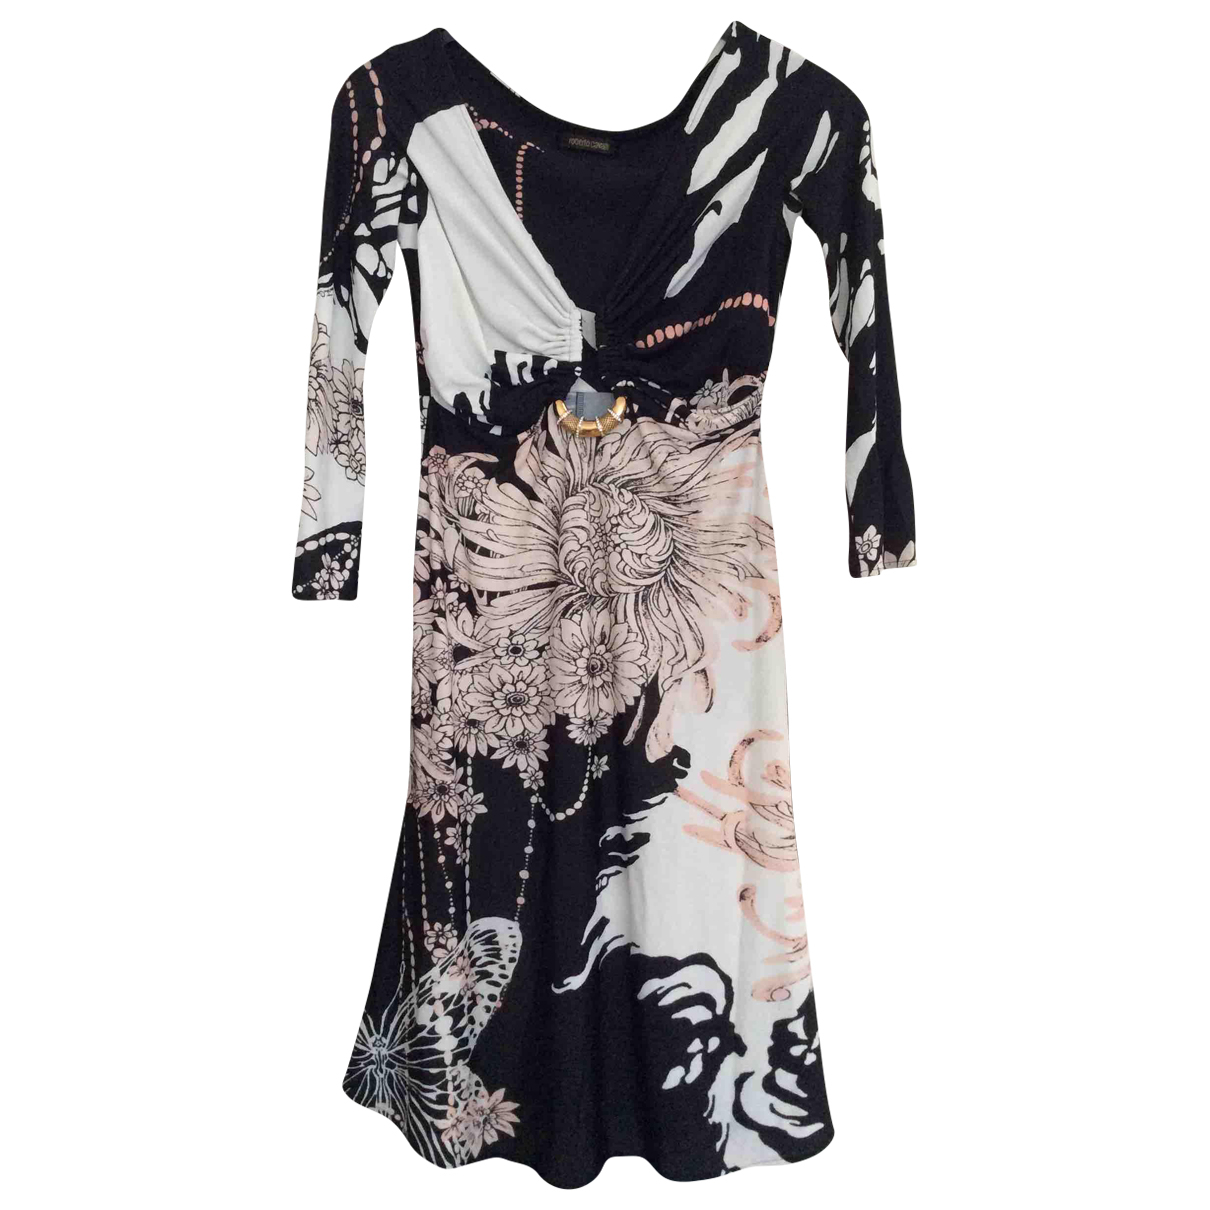 Roberto Cavalli \N dress for Women 44 IT